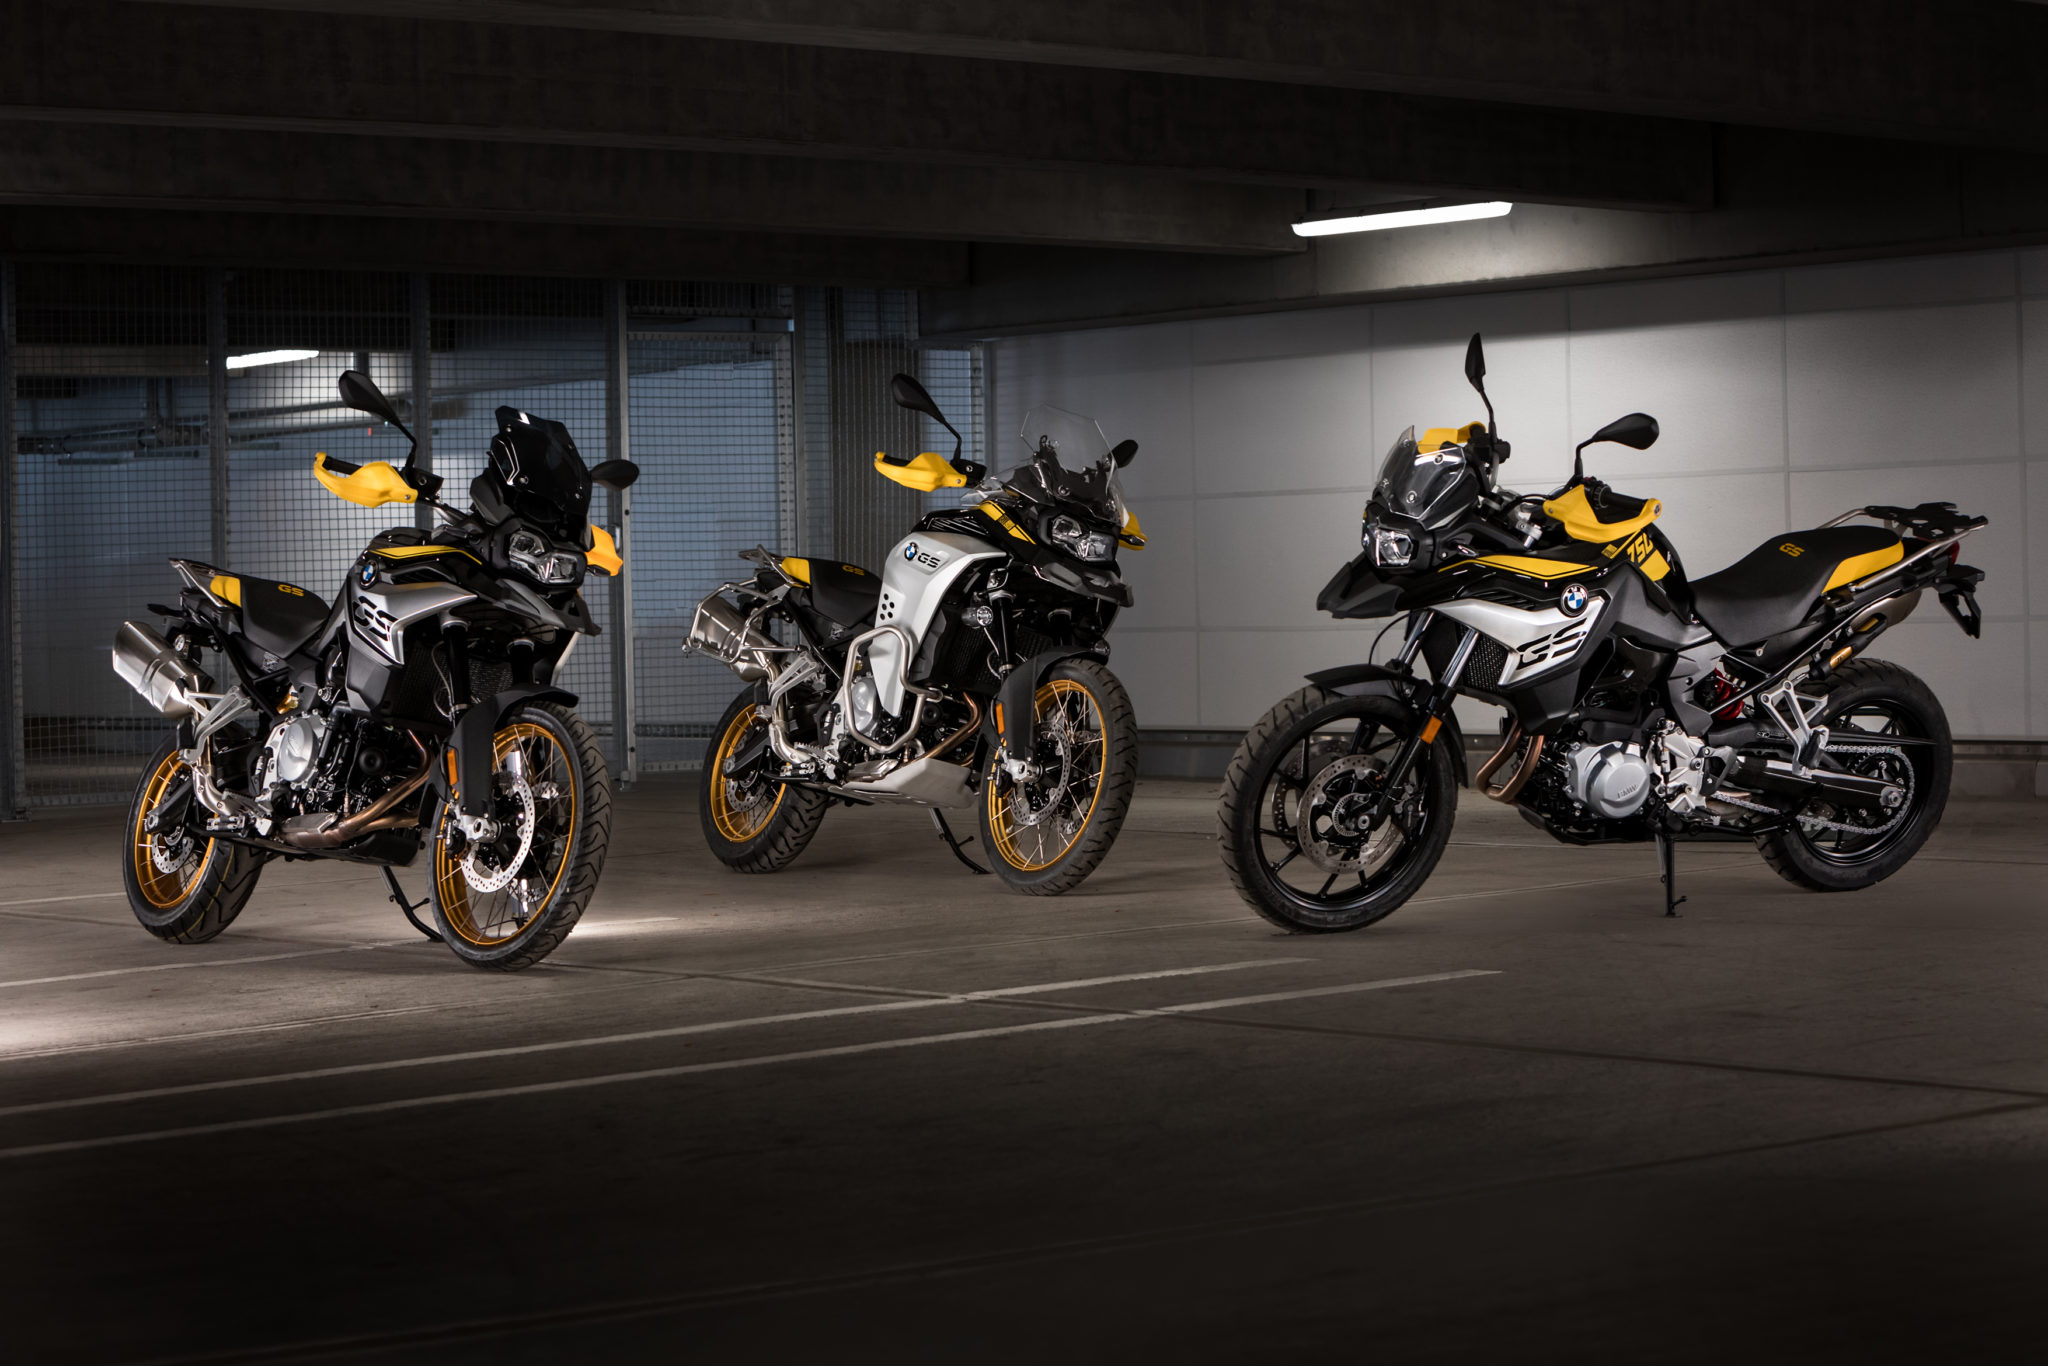 BMW Motorrad Presents the New BMW F 750 GS and BMW F 850 GS!